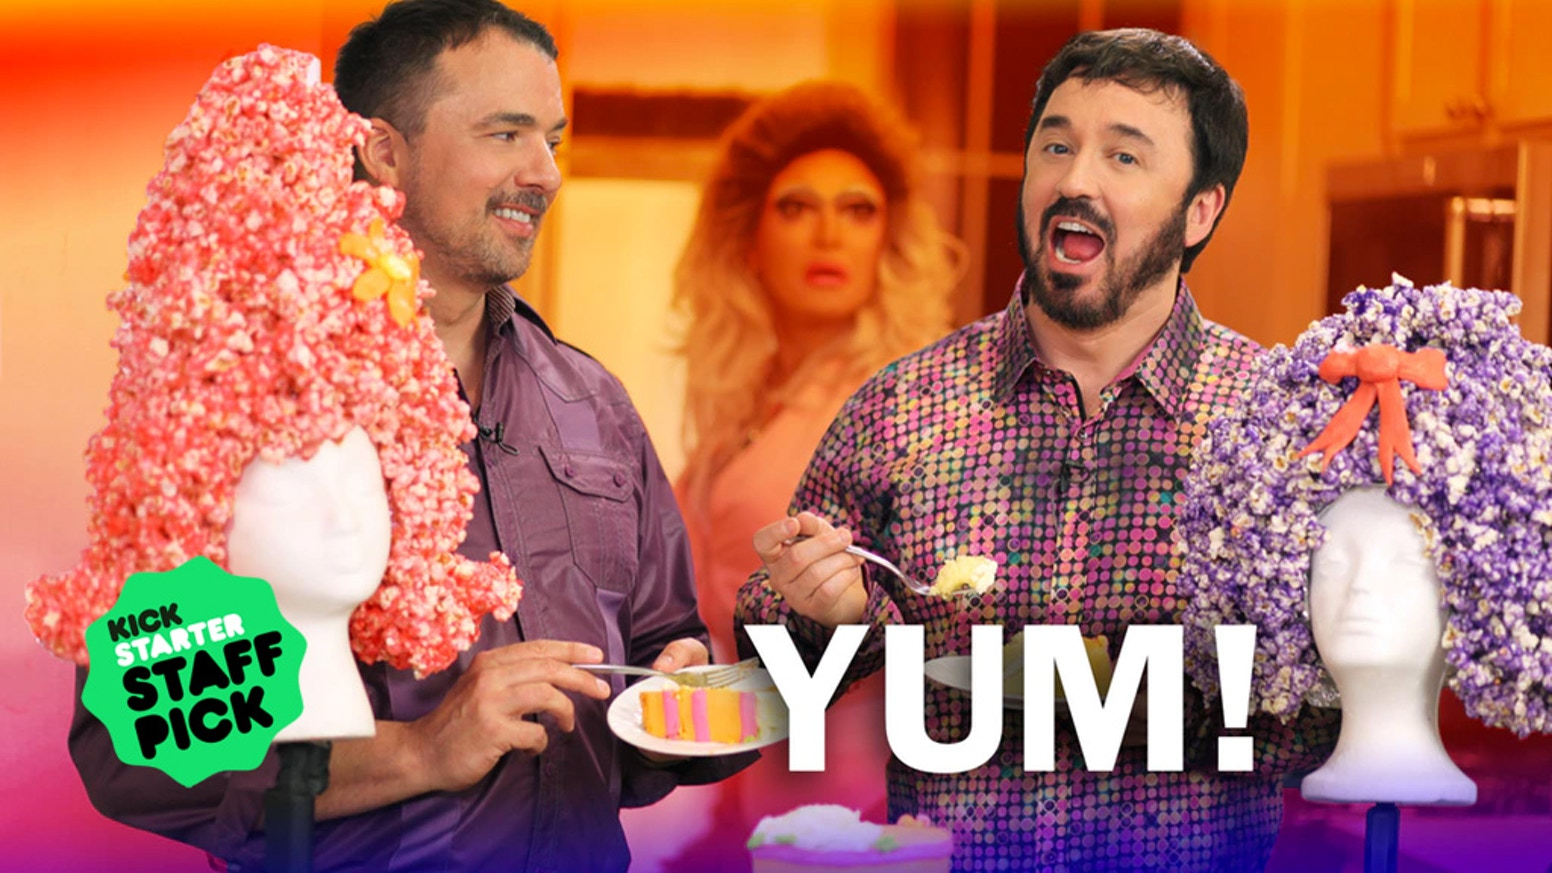 Donate $3 or more and hang out with your favorite drag queens in this tasty cooking show. Plus: a drag queen cooking competition.